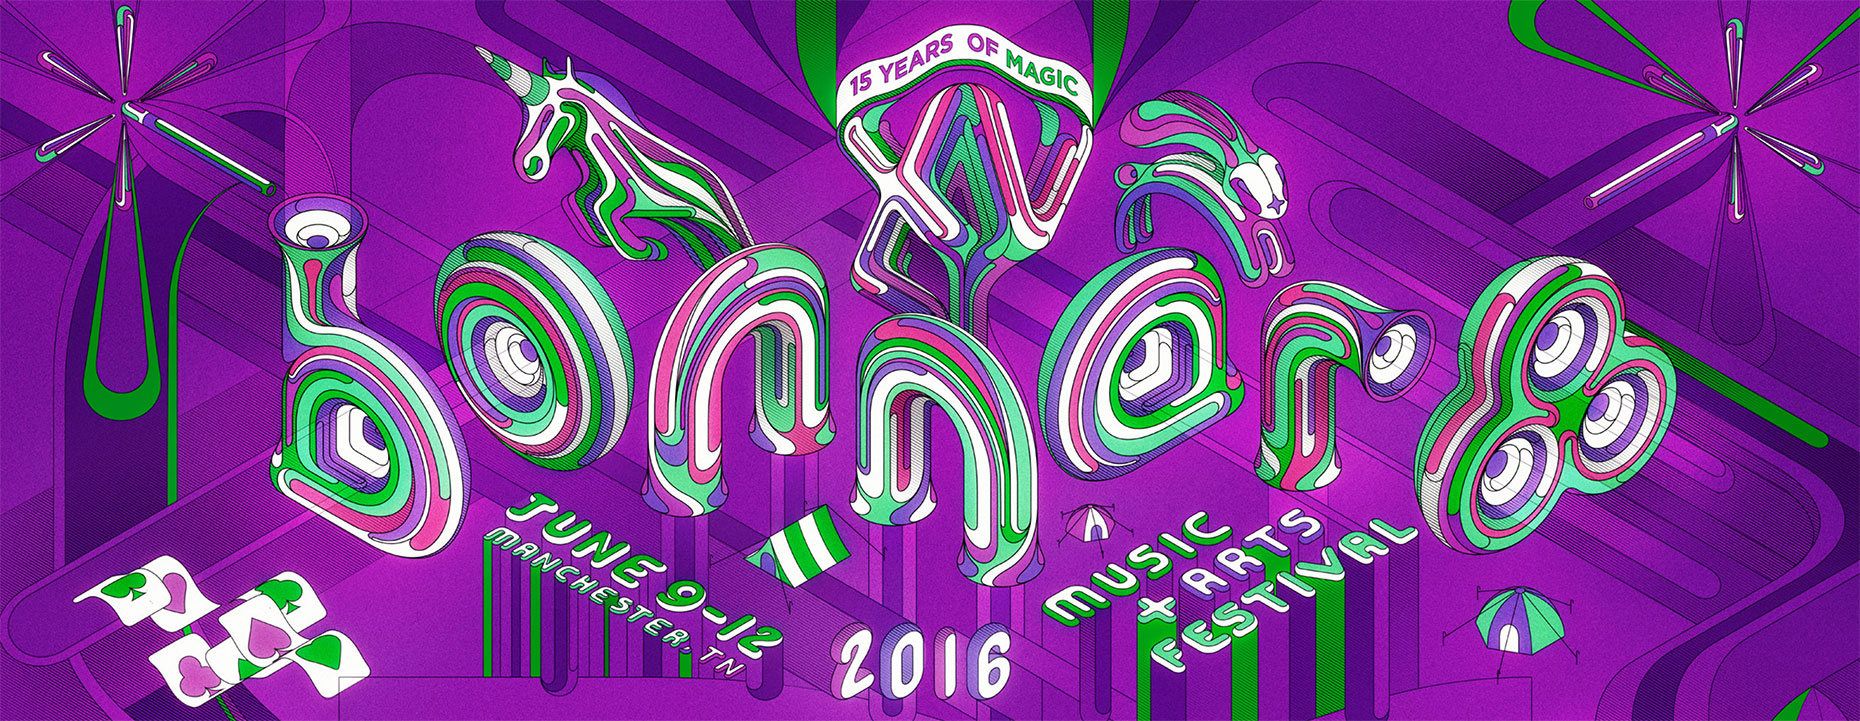 CharlesWilliams_Bonnaroo_Logotype.jpg